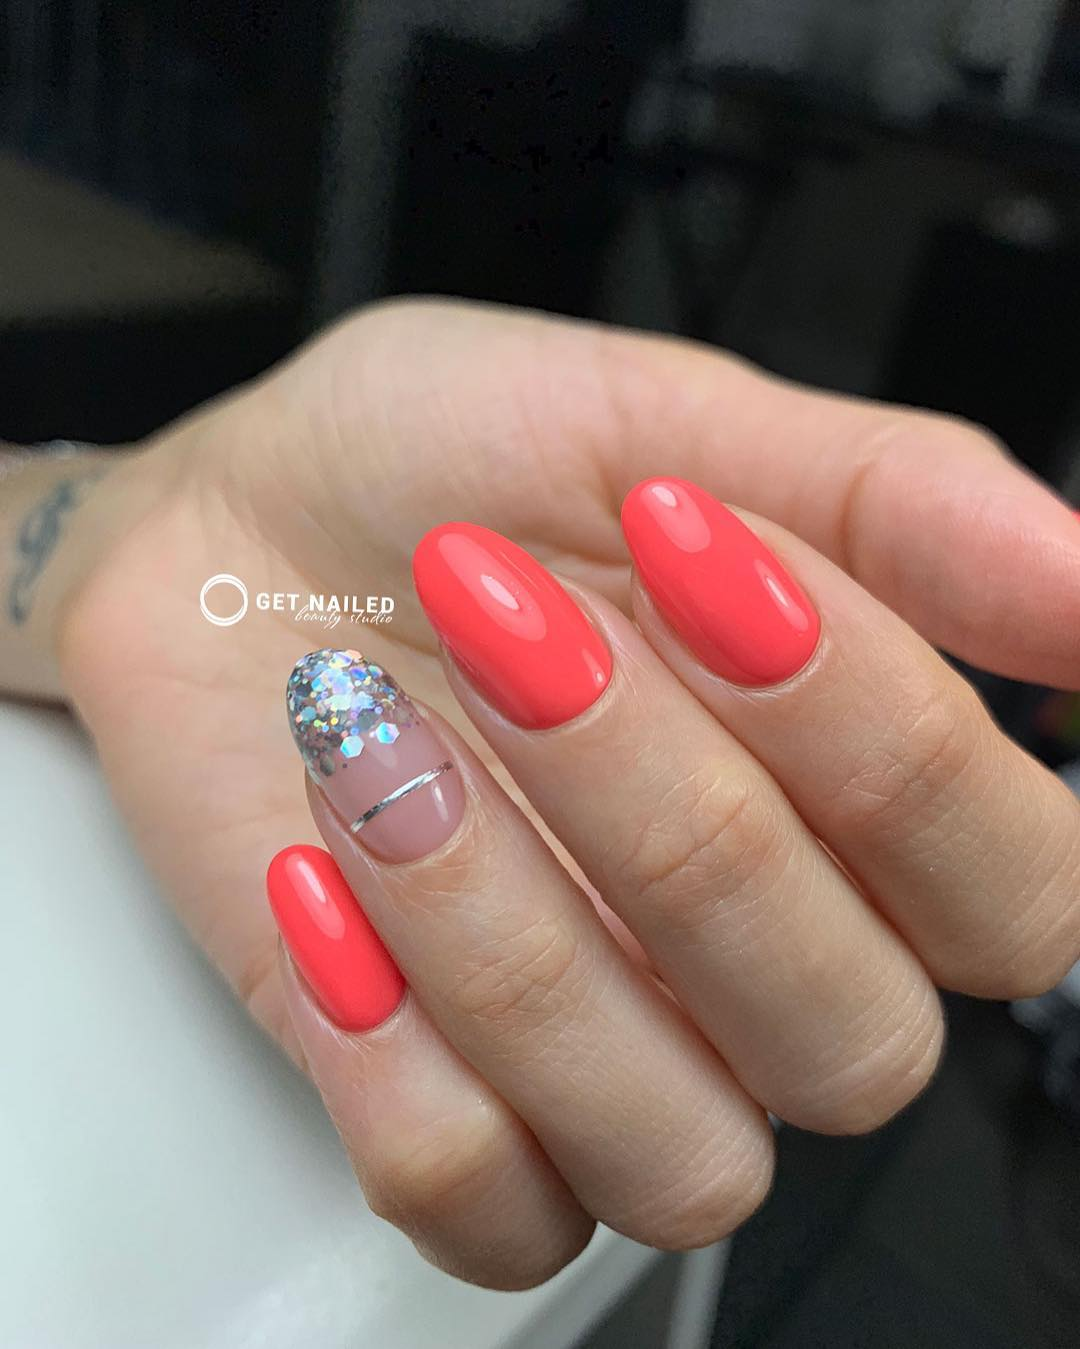 Shining bright Nails done by Karina You can book your appointment on getnailed.co, through DM, WhatsApp +34 680 576 151 or simply by leaving a comment ..luxiogel